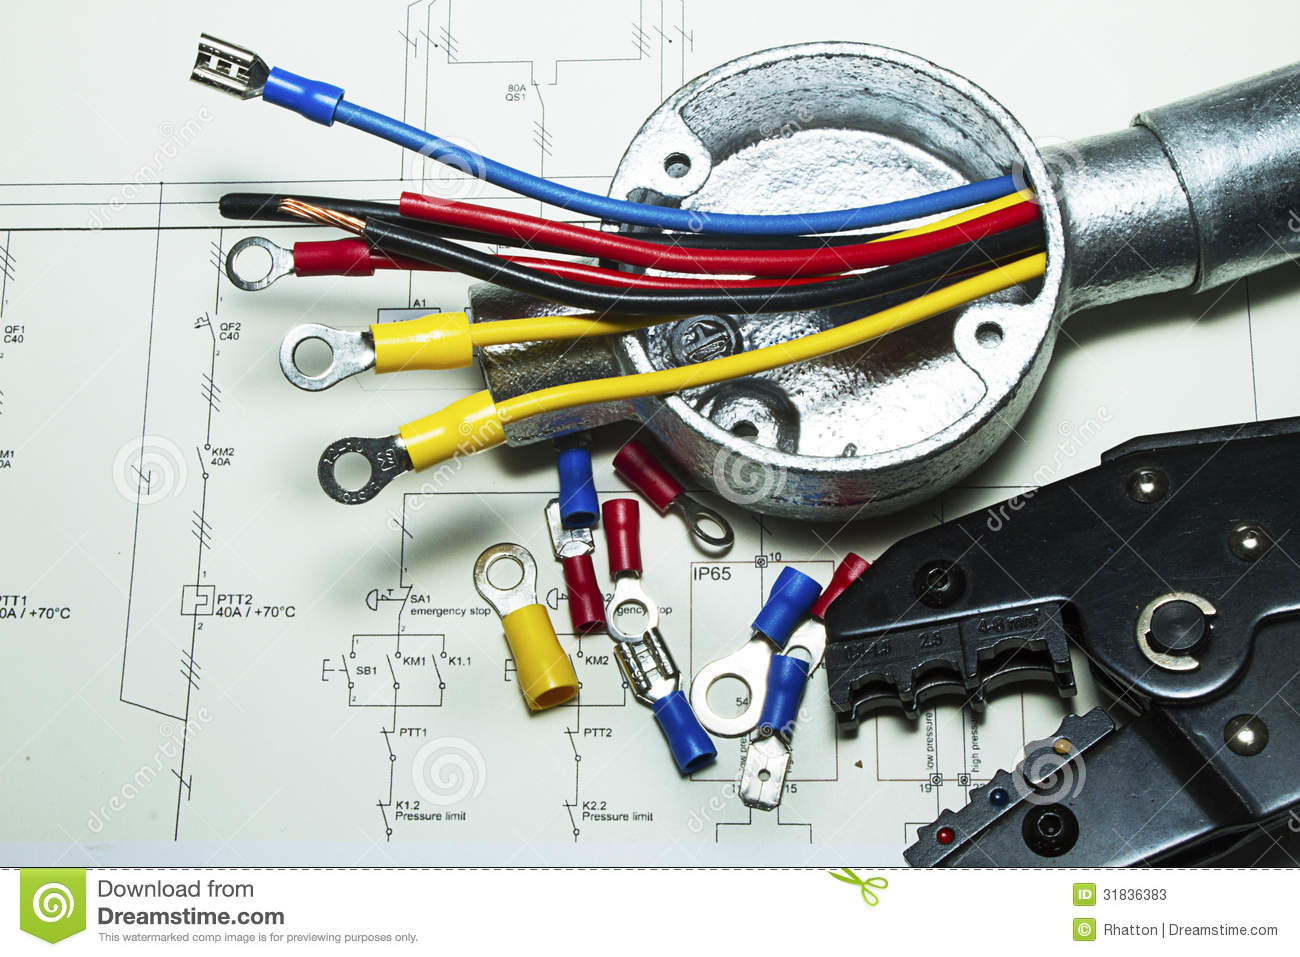 electrical-wiring-construction-made-connections-31836383 Wiring Electrical on